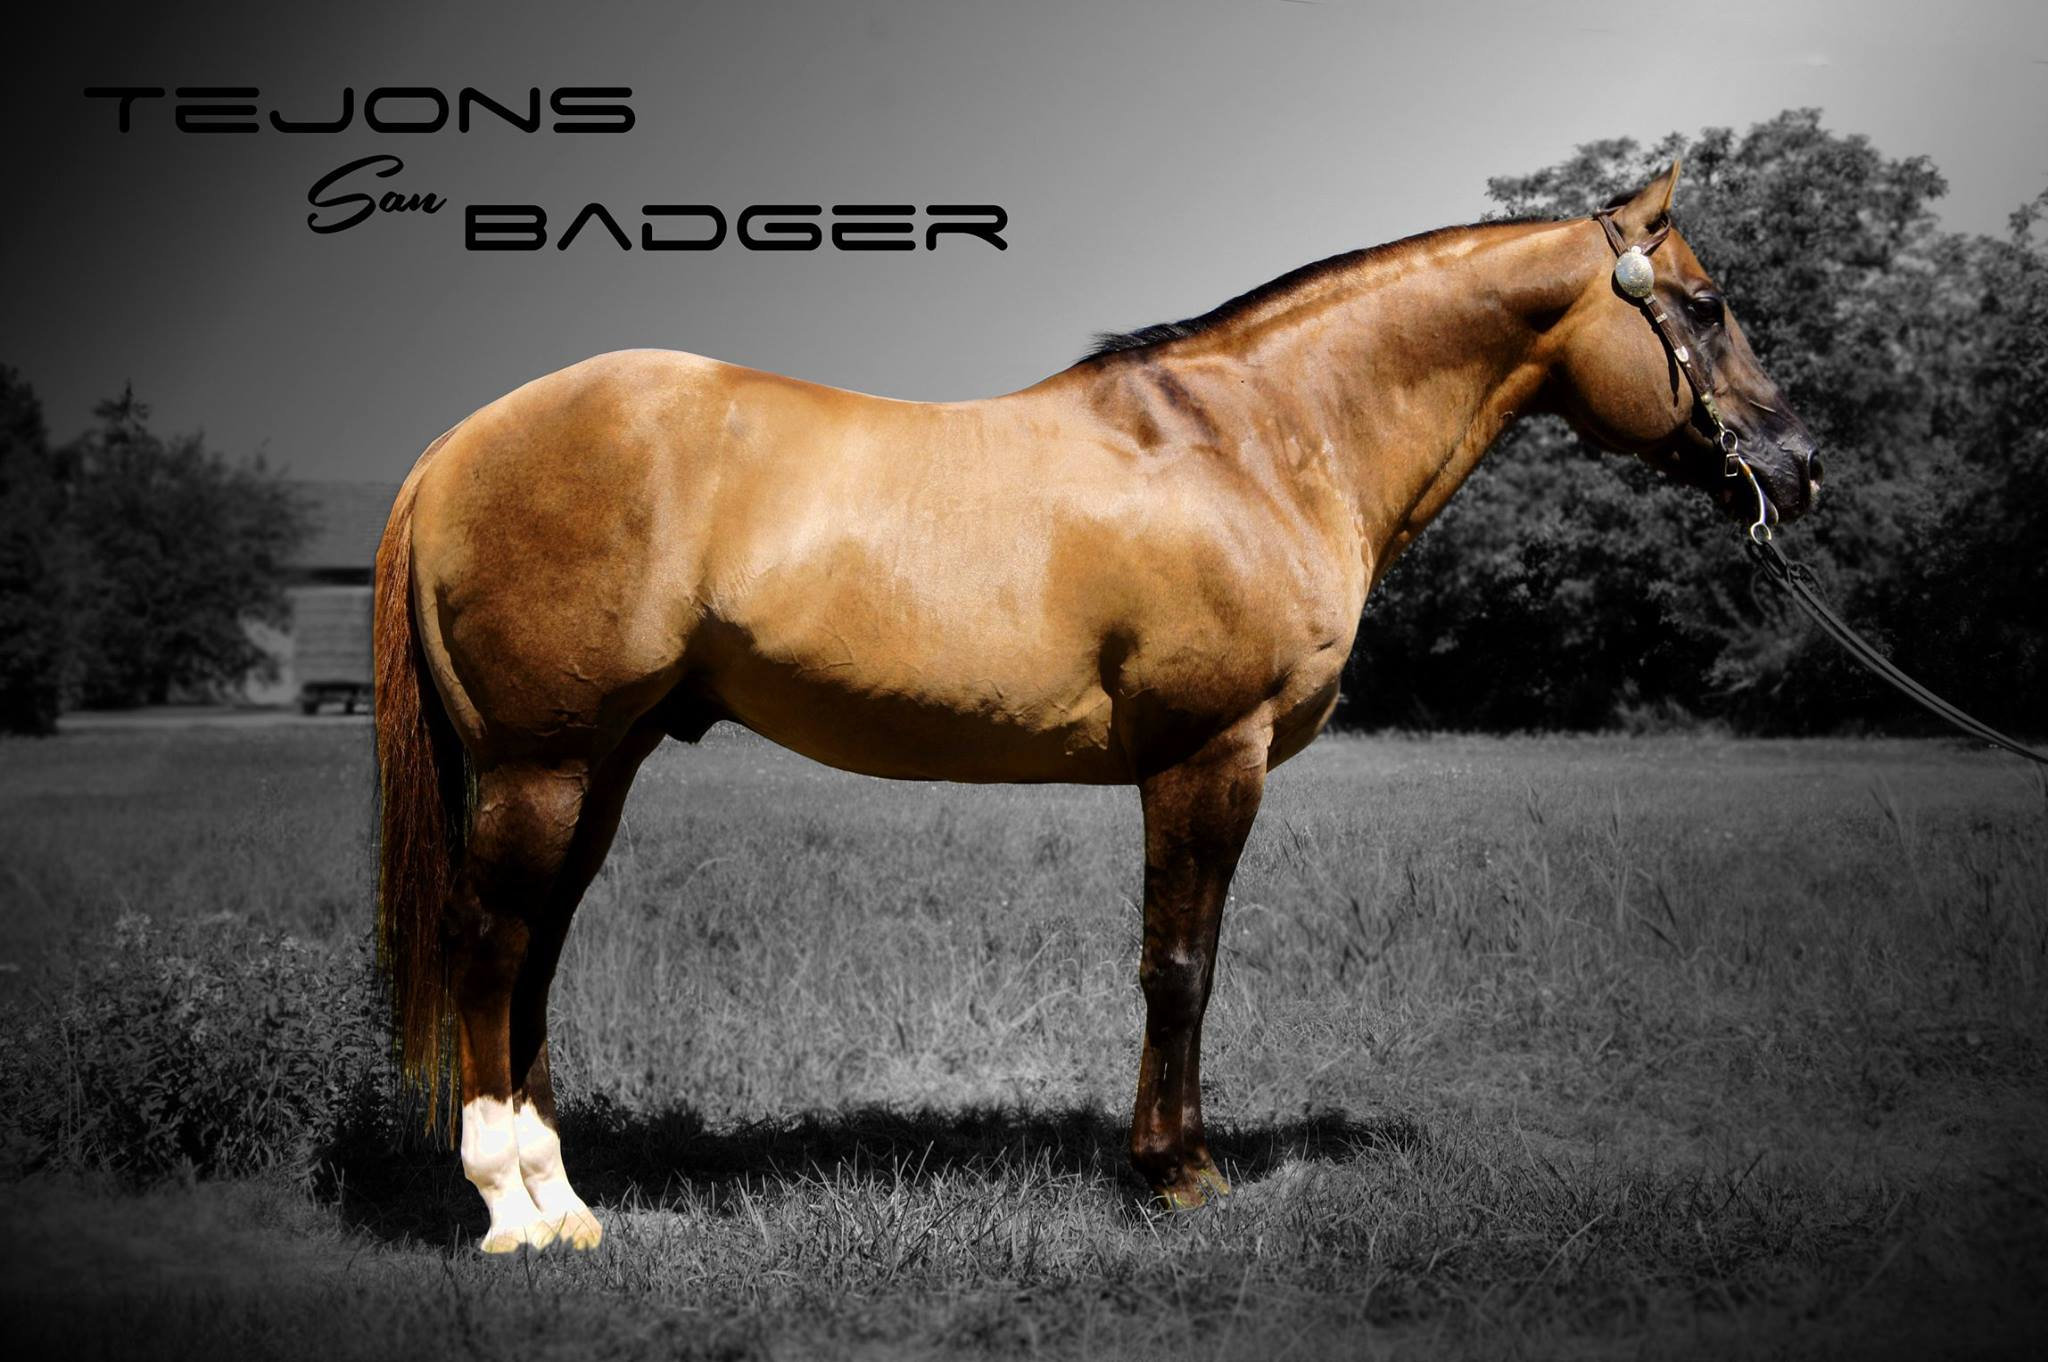 tejons san badger 2015